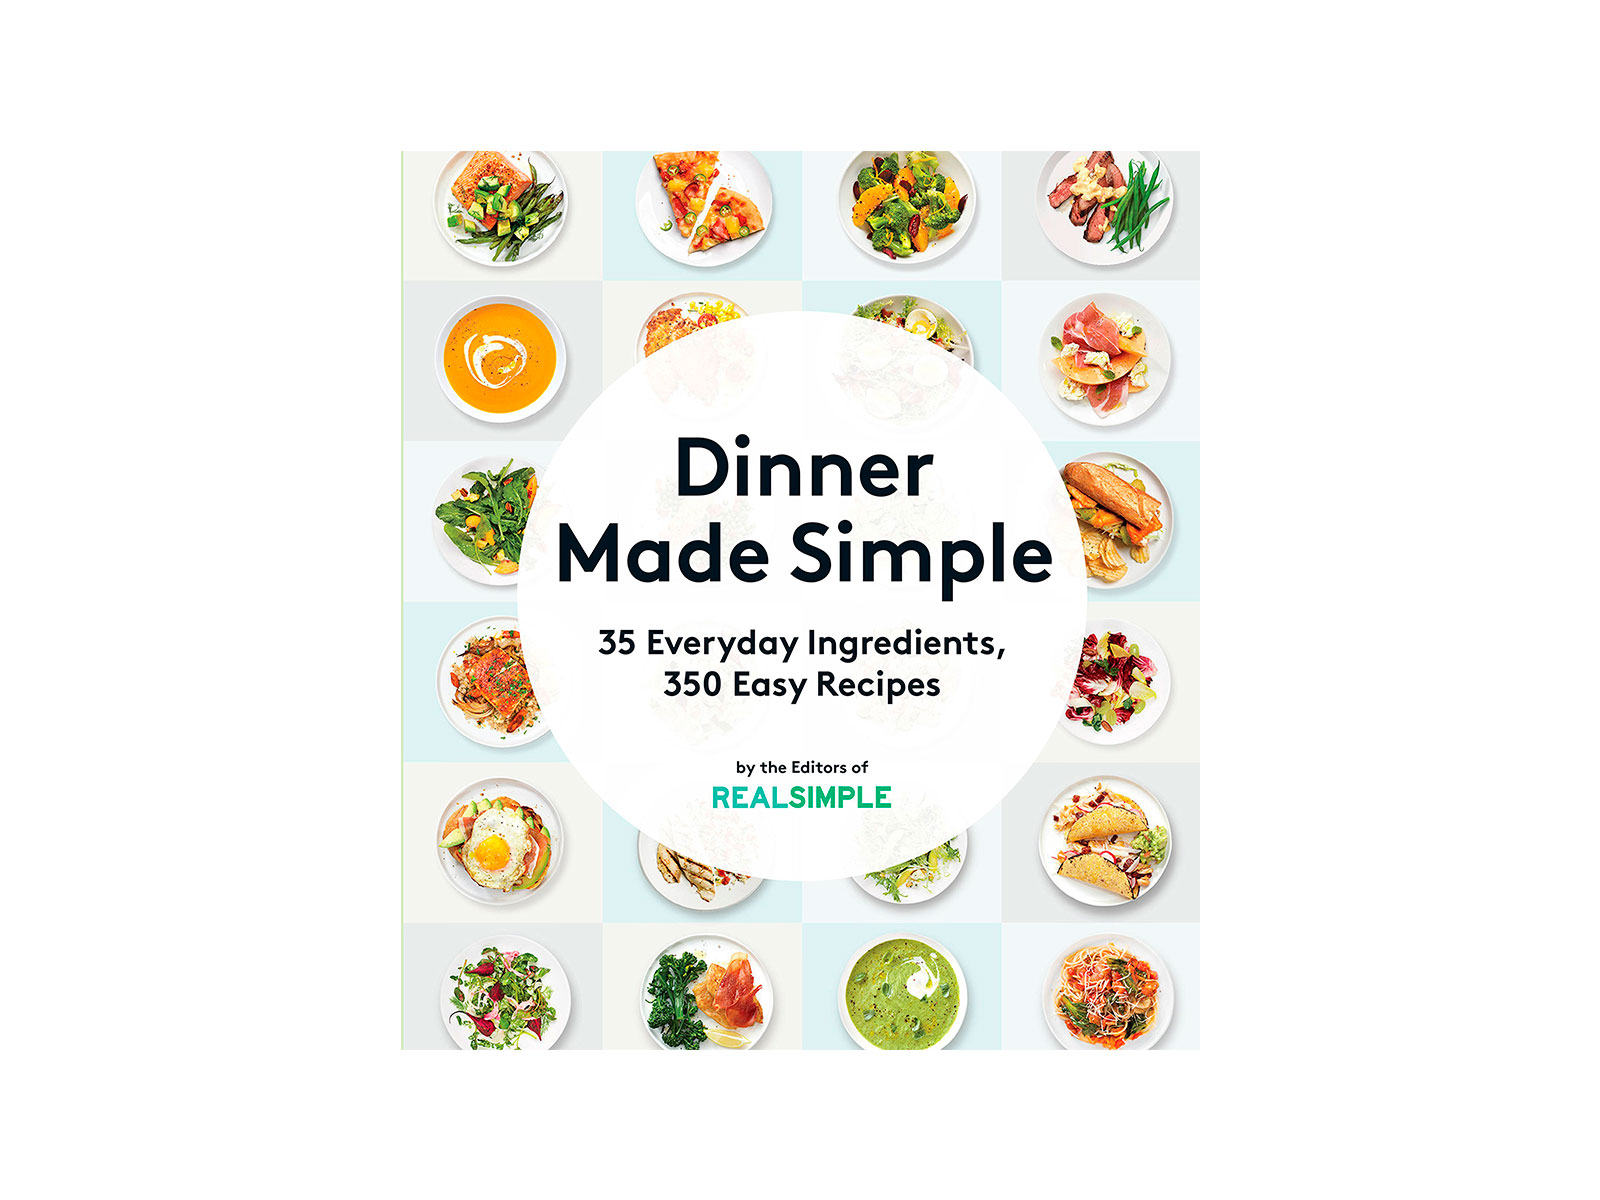 Dinner Made Simple Cookbook